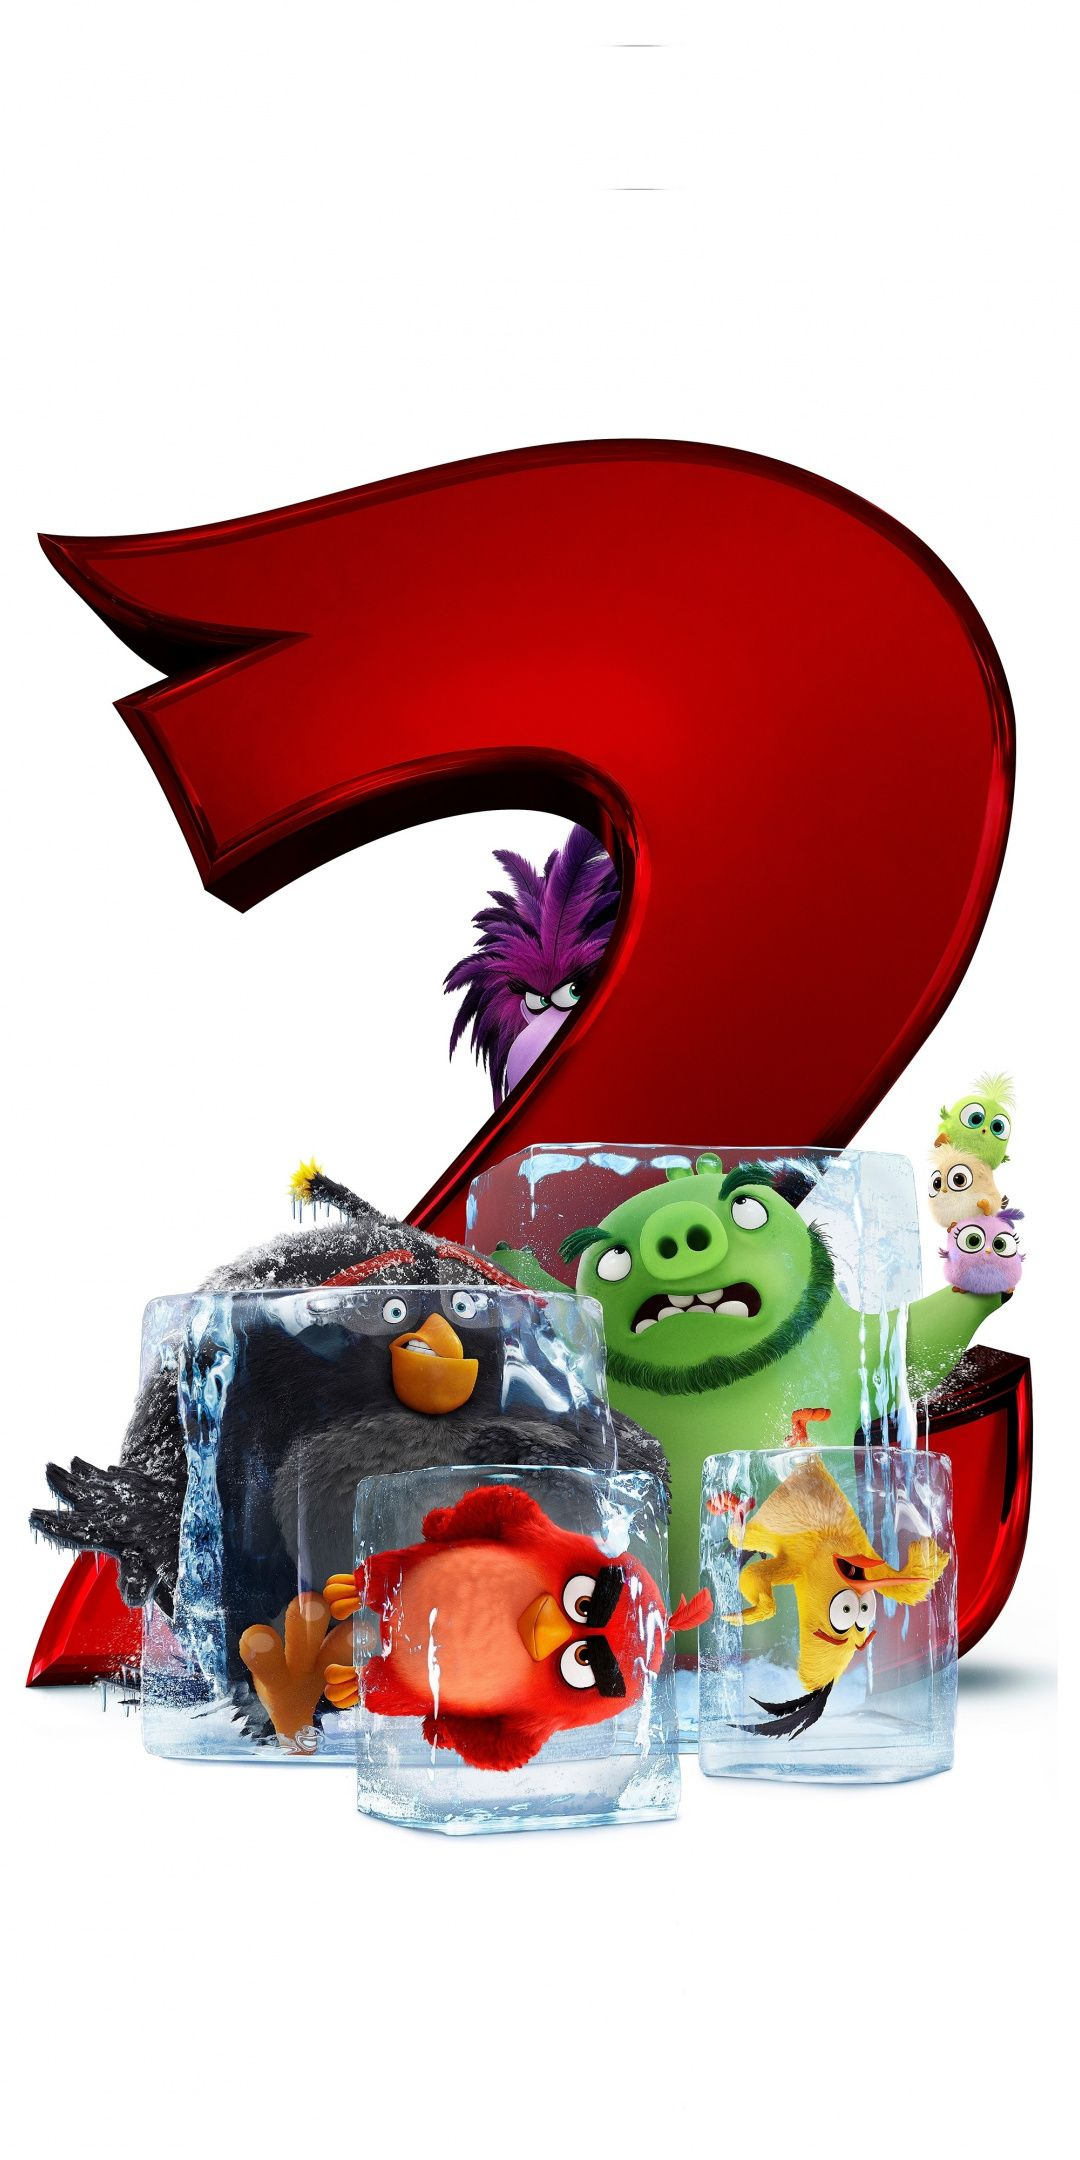 The Angry Birds Movie 2, 2019, 1080x2160 wallpaper in 2019.